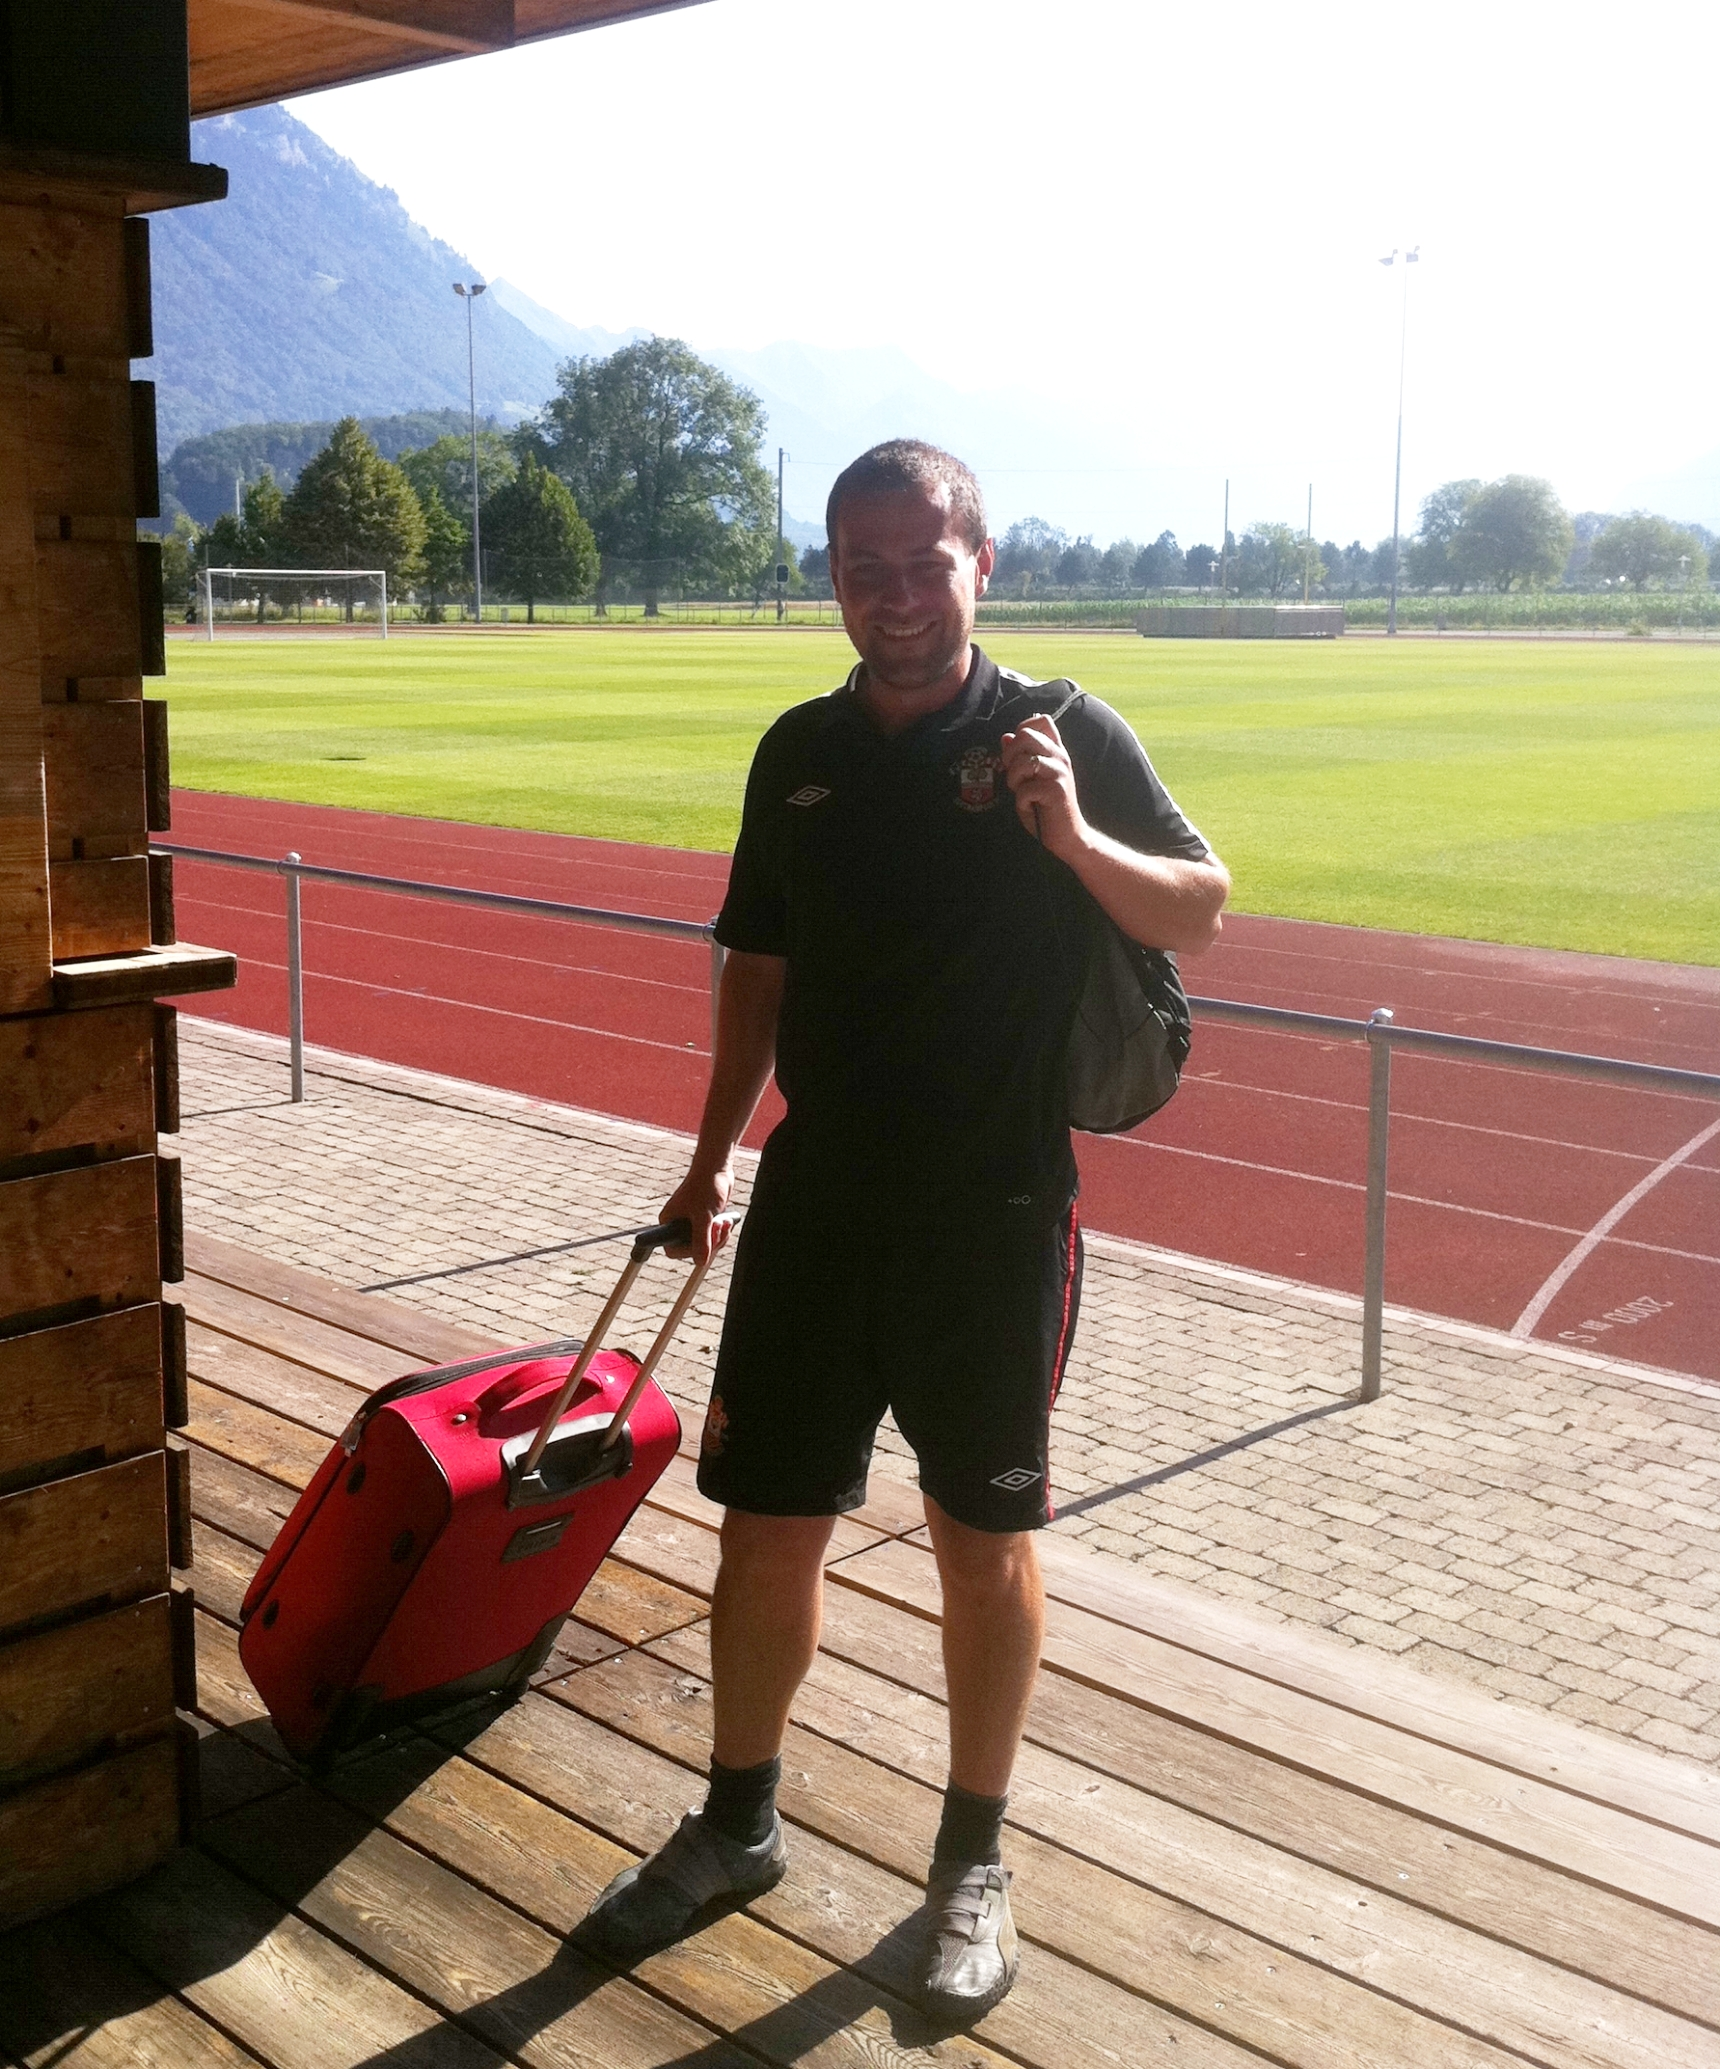 Job well done Andy. Now back to Southampton to make sure the training pitches are ready for when we return from the Tour of Interlaken in Switzerland.